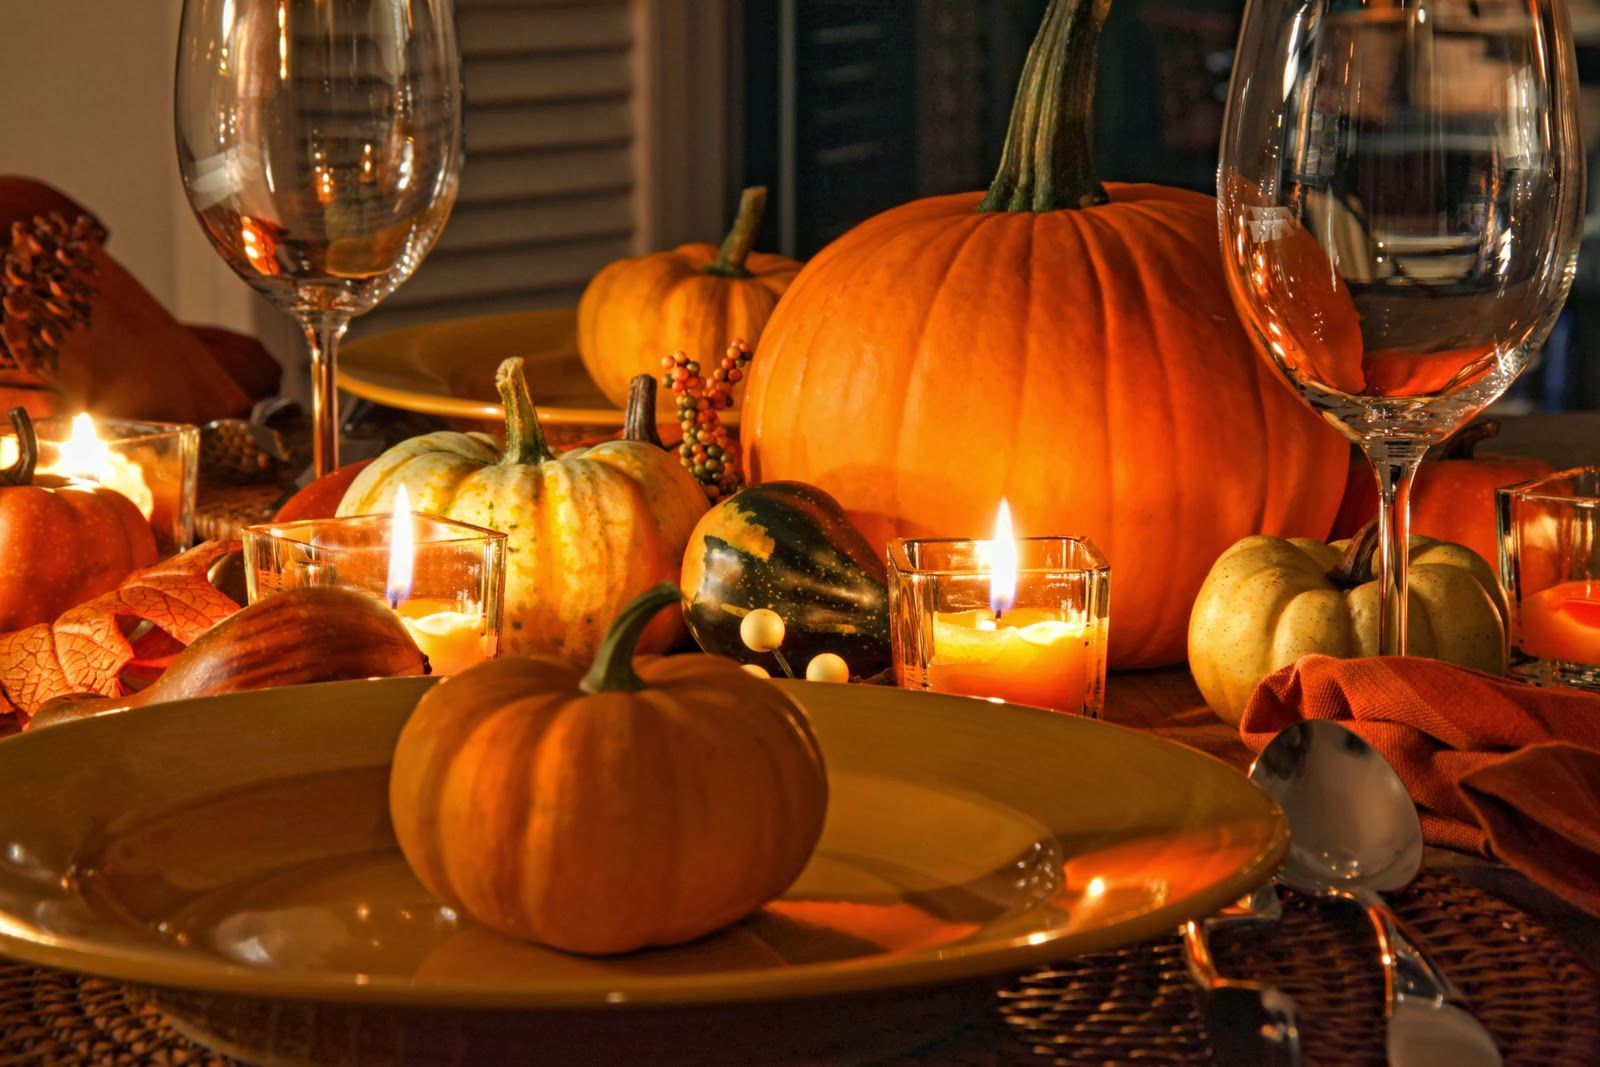 3 WAYS TO DECORATE THE TABLE FOR THANKSGIVING